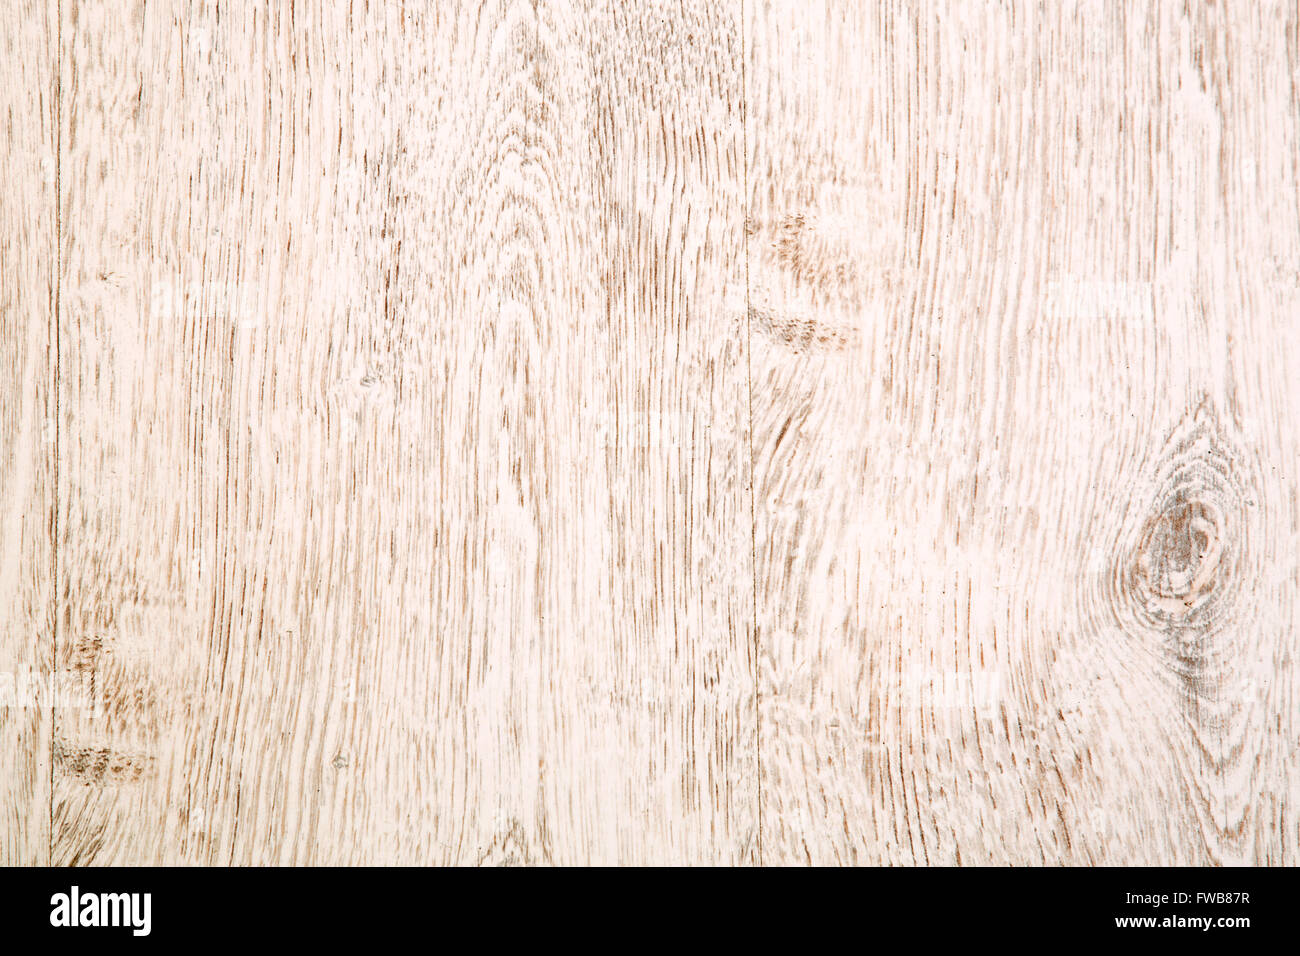 Texture of light wooden laminate - Stock Image